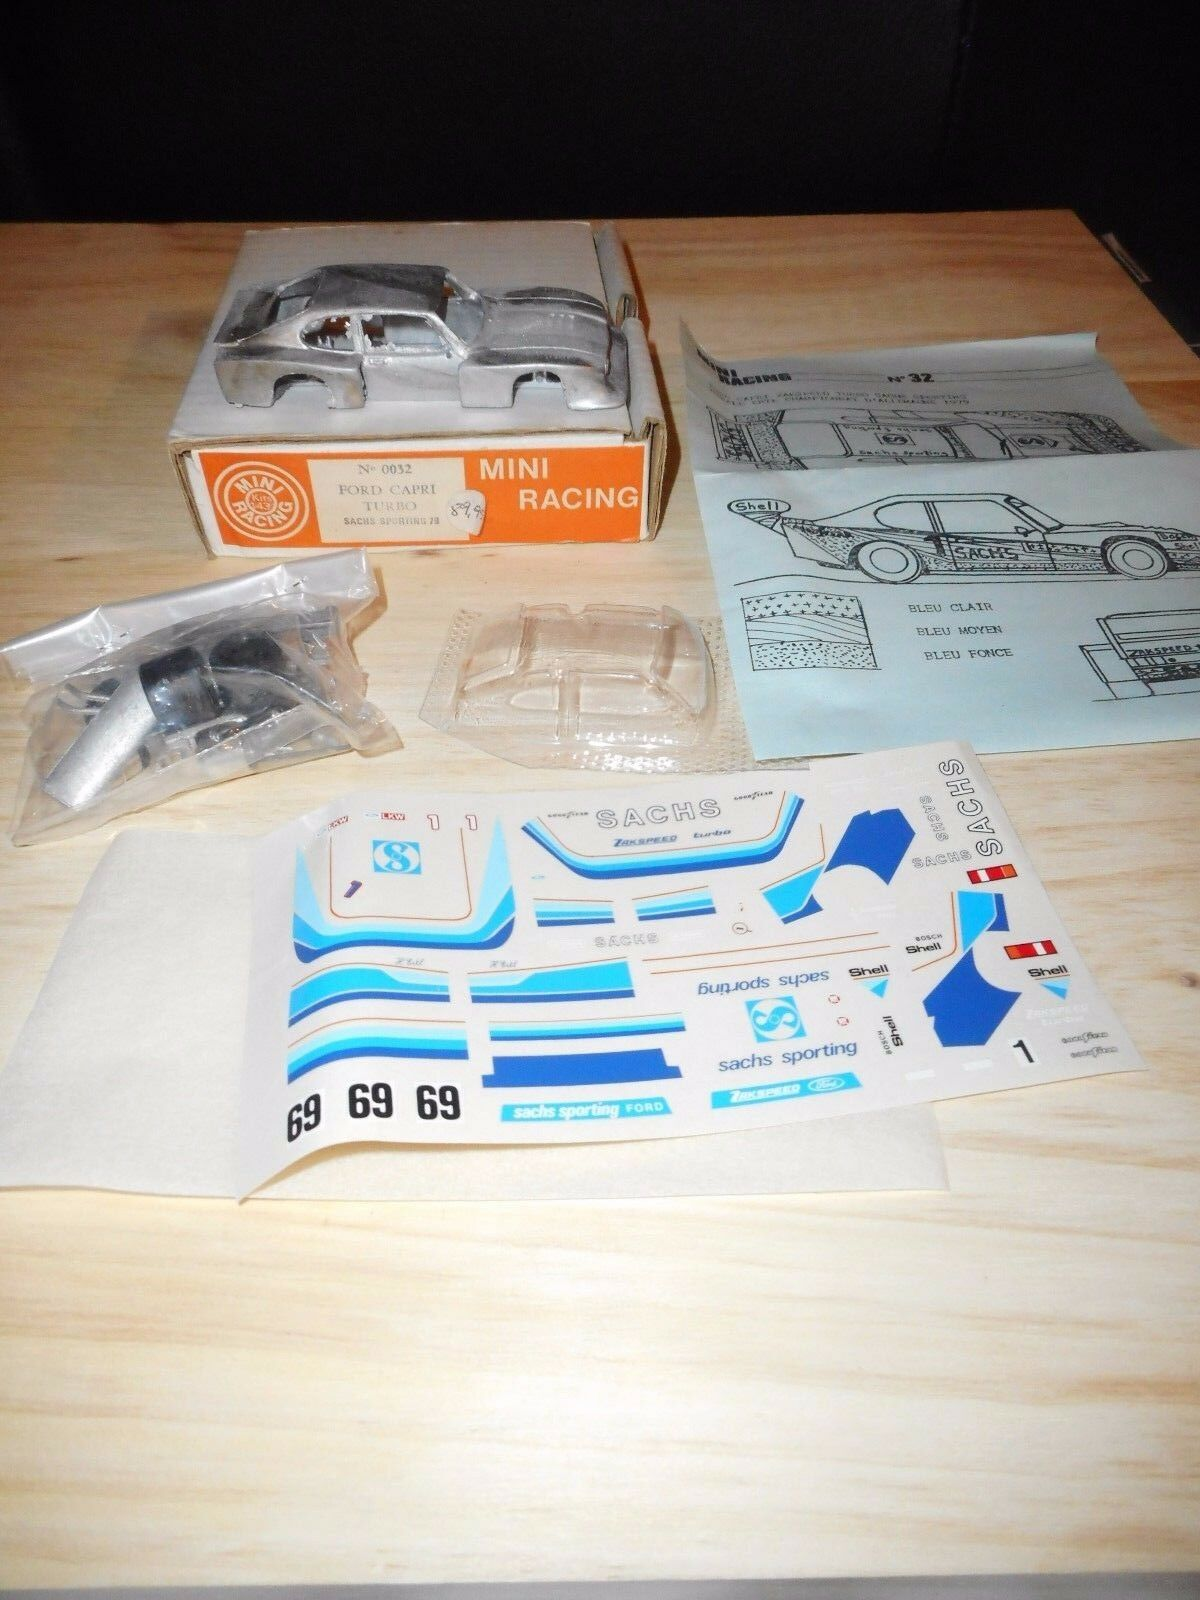 KIT 1 43 vintage MINI RACING FORD CAPRI SACHS SPORTING  allemagne 1979 métal